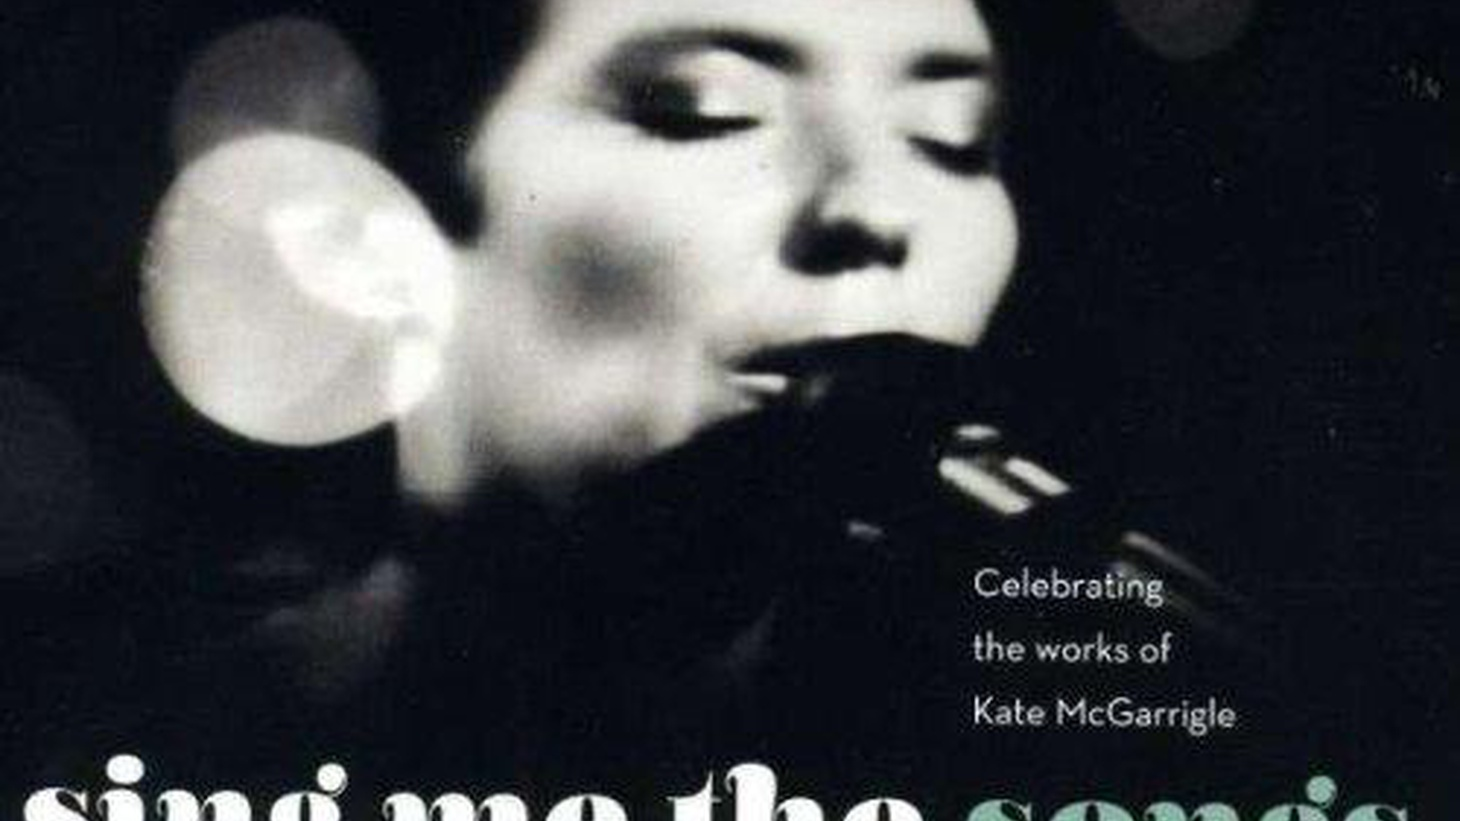 Over the course of two discs, this collection documents those concerts, as Kate's music shines through the variety of performers. It serves as either a wonderful primer for the uninitiated or an excellent summary for longtime fans.